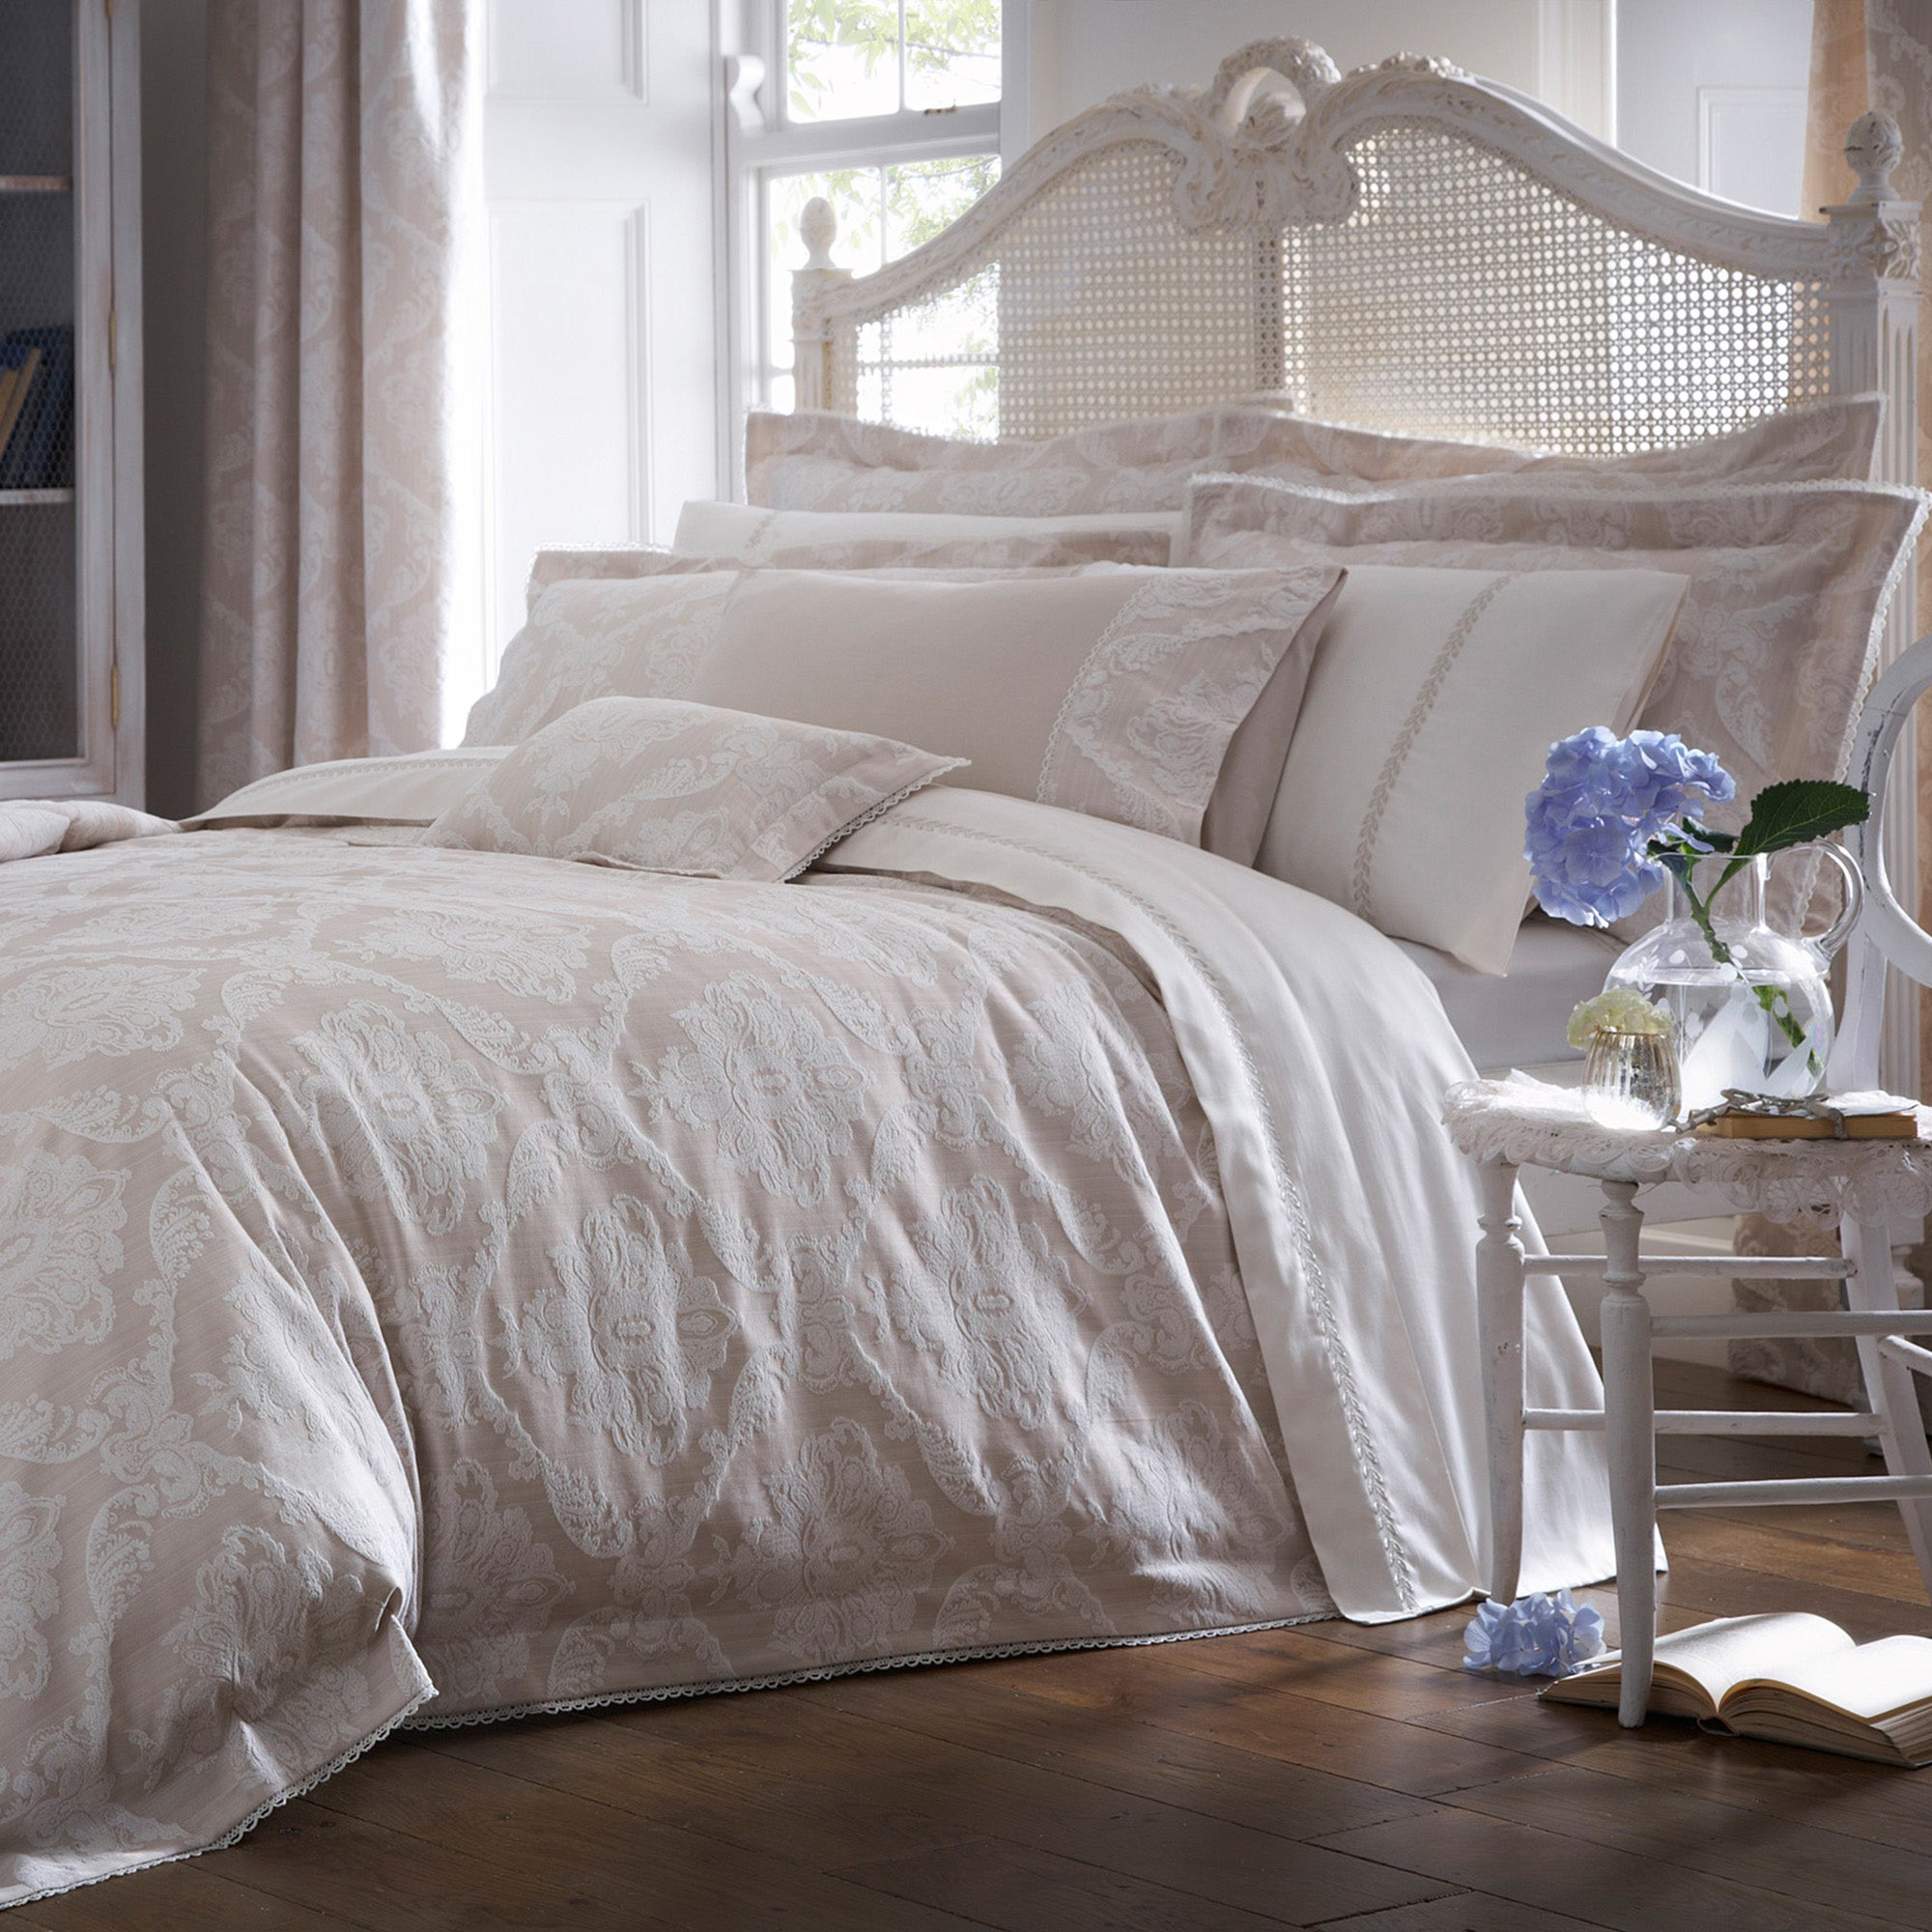 Dorma Natural Aveline Bed Linen Collection